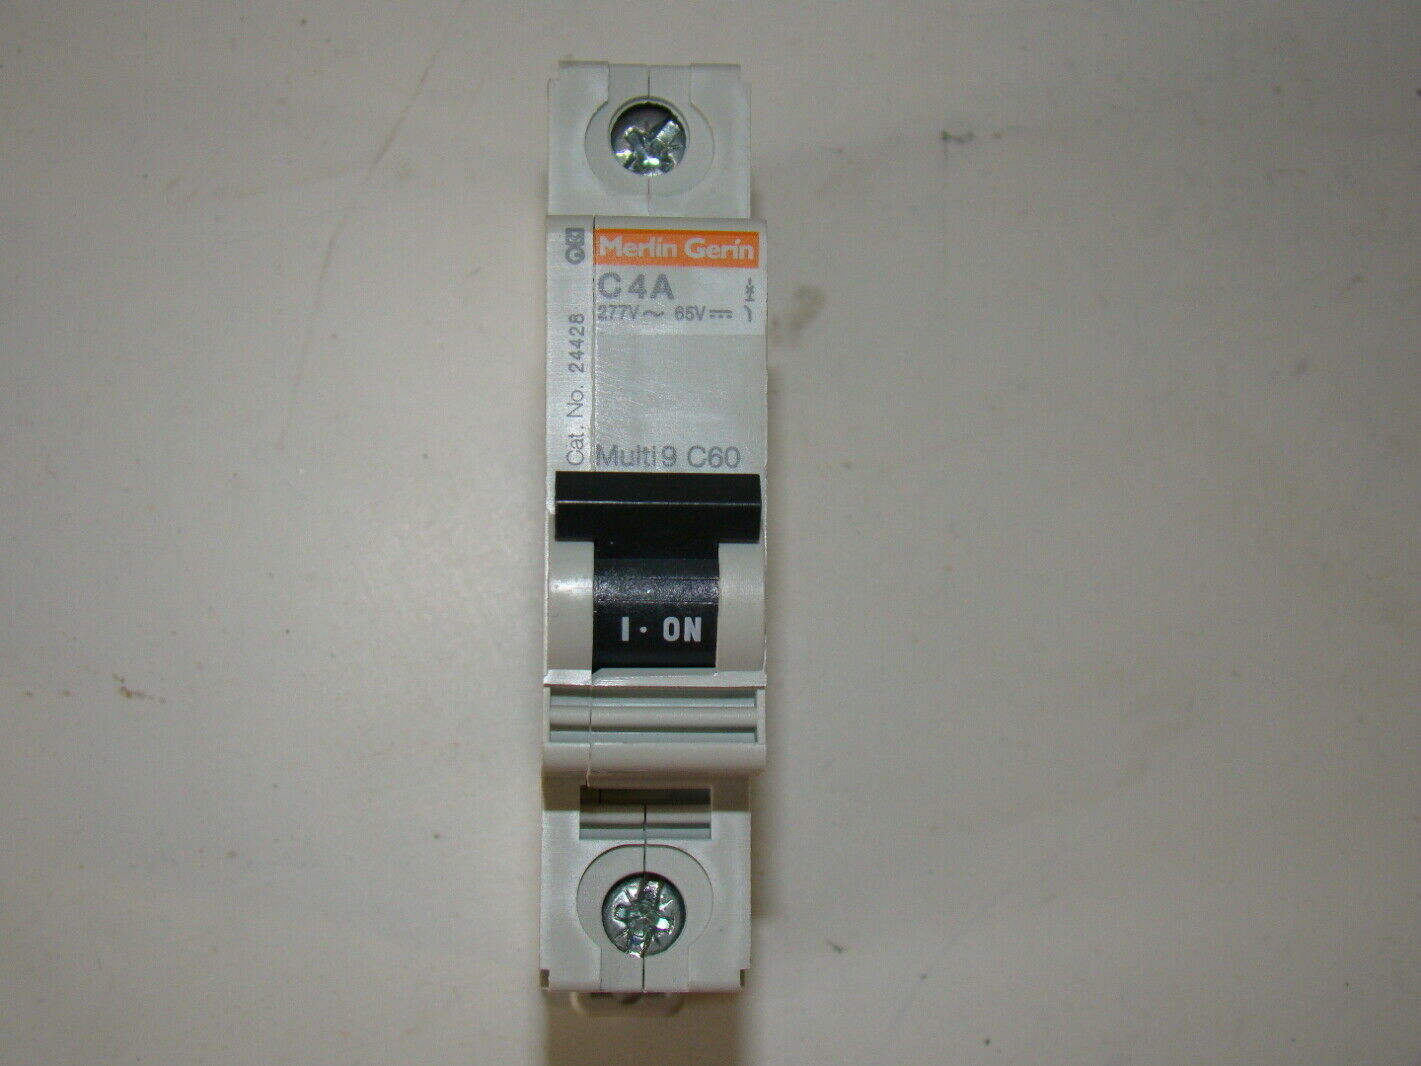 Square D Merlin Gerin DIN Mount Breaker MG 24428